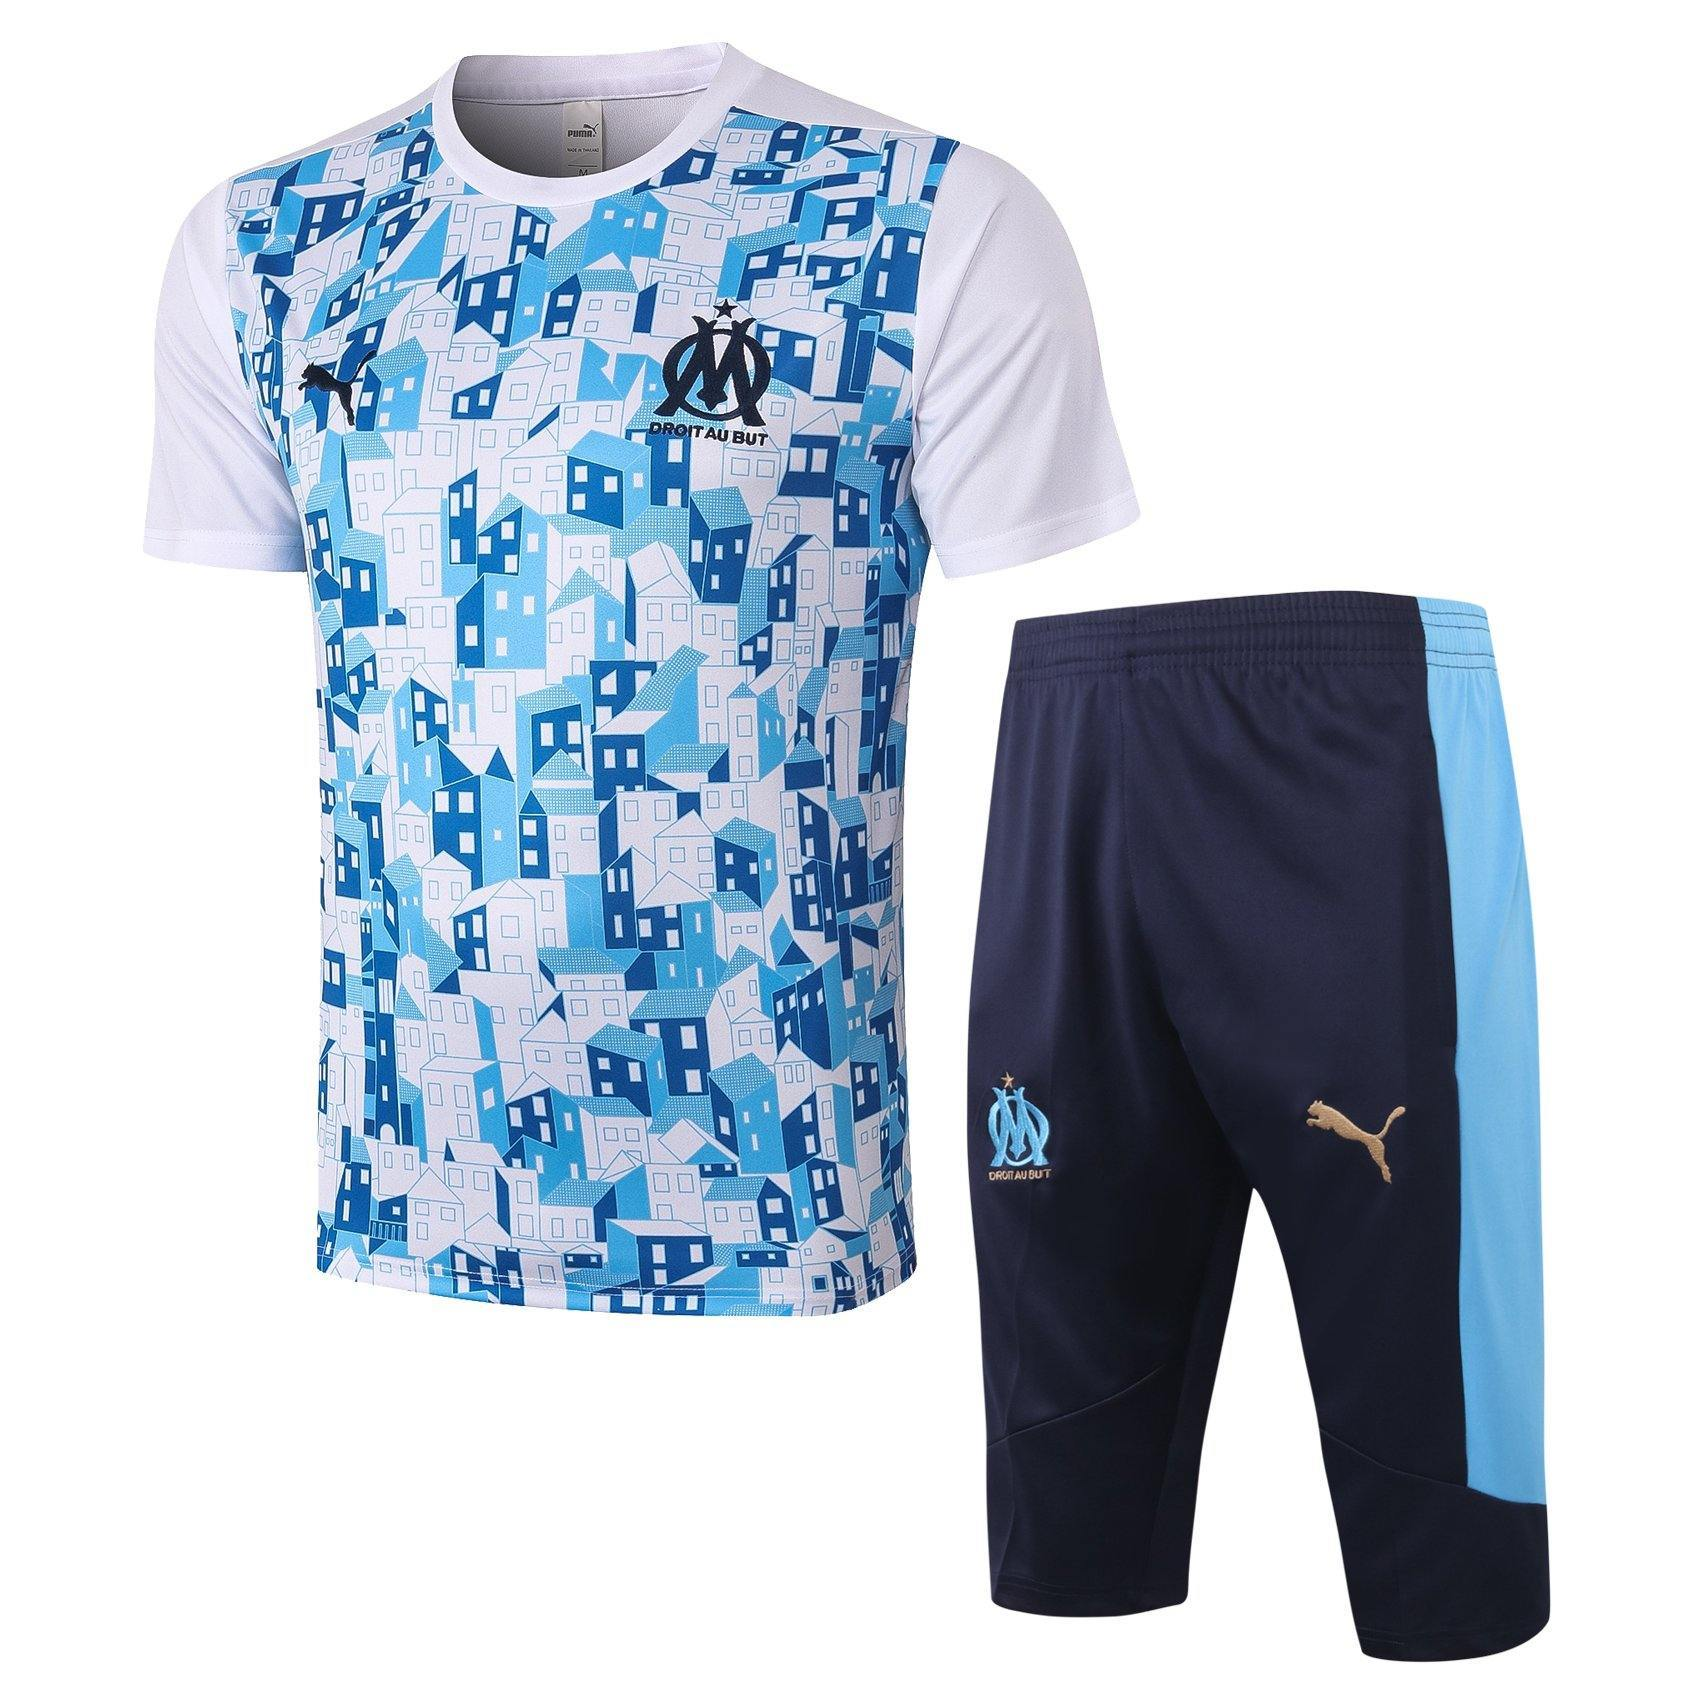 Maillot/Pantalon 3/4 Entrainement Marseille OM 2021 Homme freeshipping - Foot Online